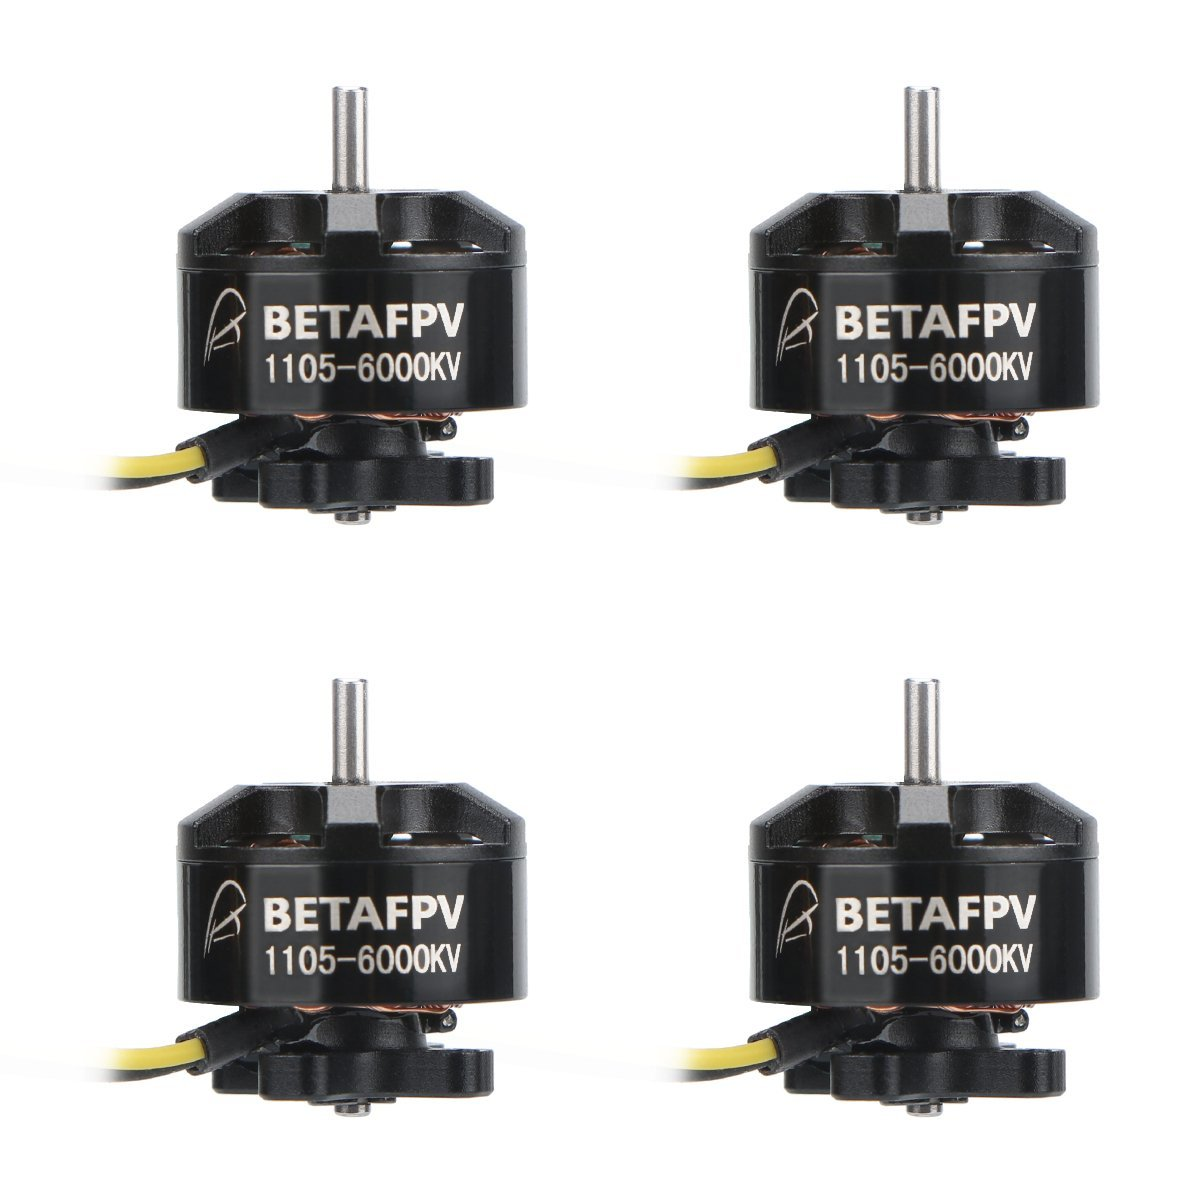 BETAFPV 1105 6000KV Brushless Motors